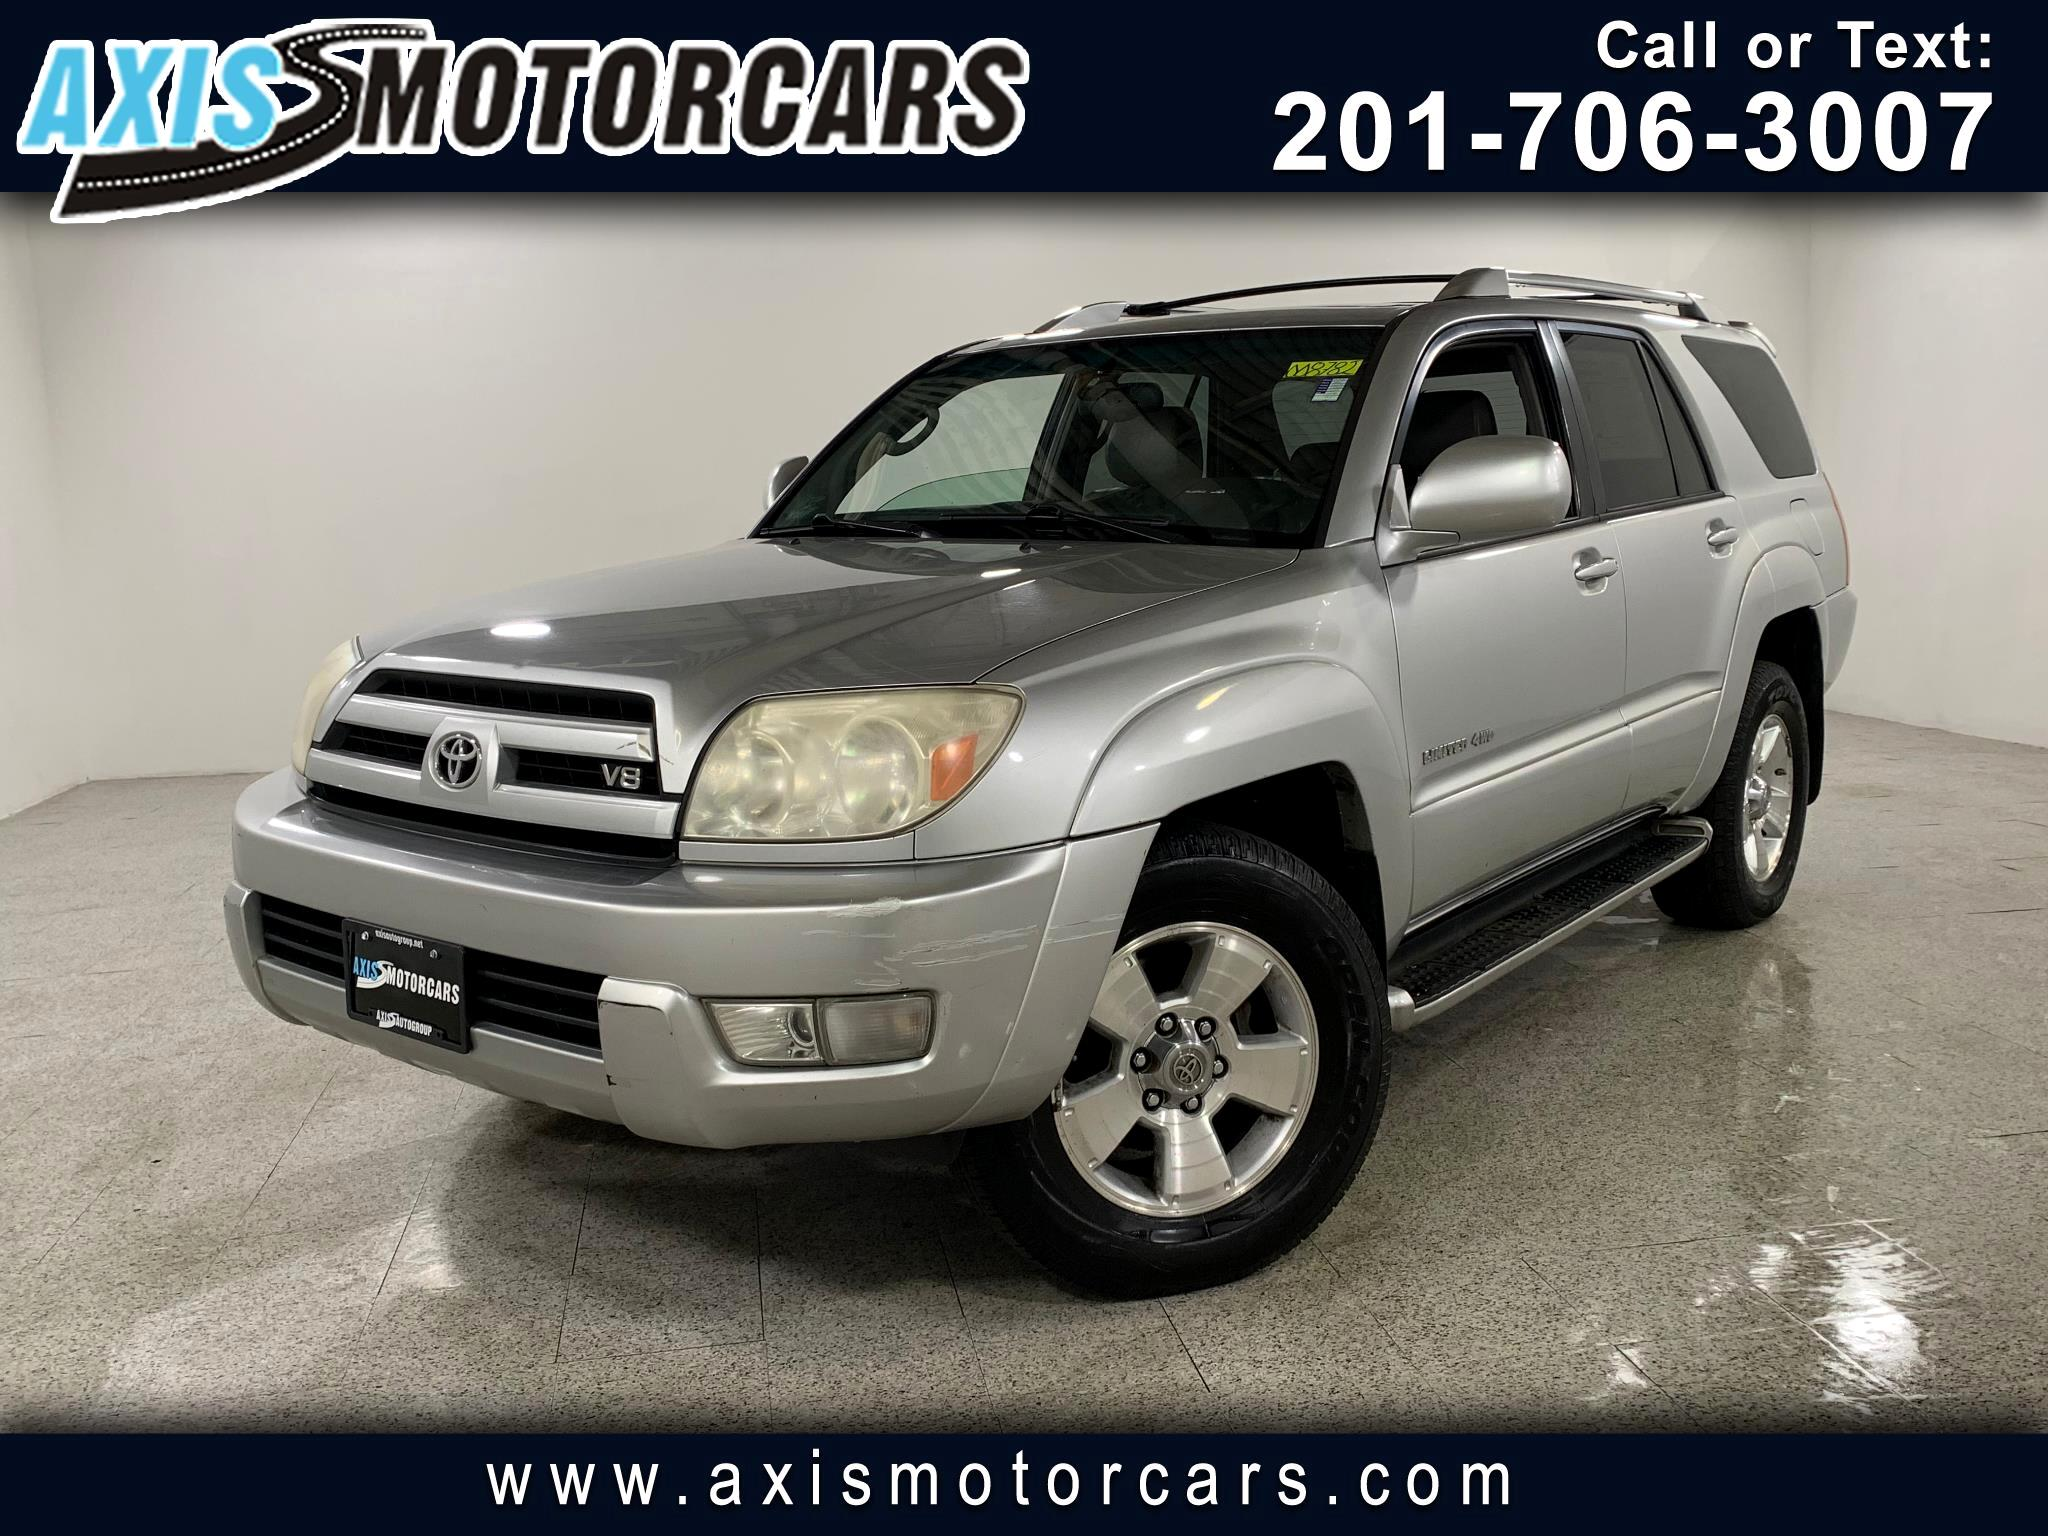 2004 Toyota 4Runner w/Sunroof Navigation Bakup Camera Leather